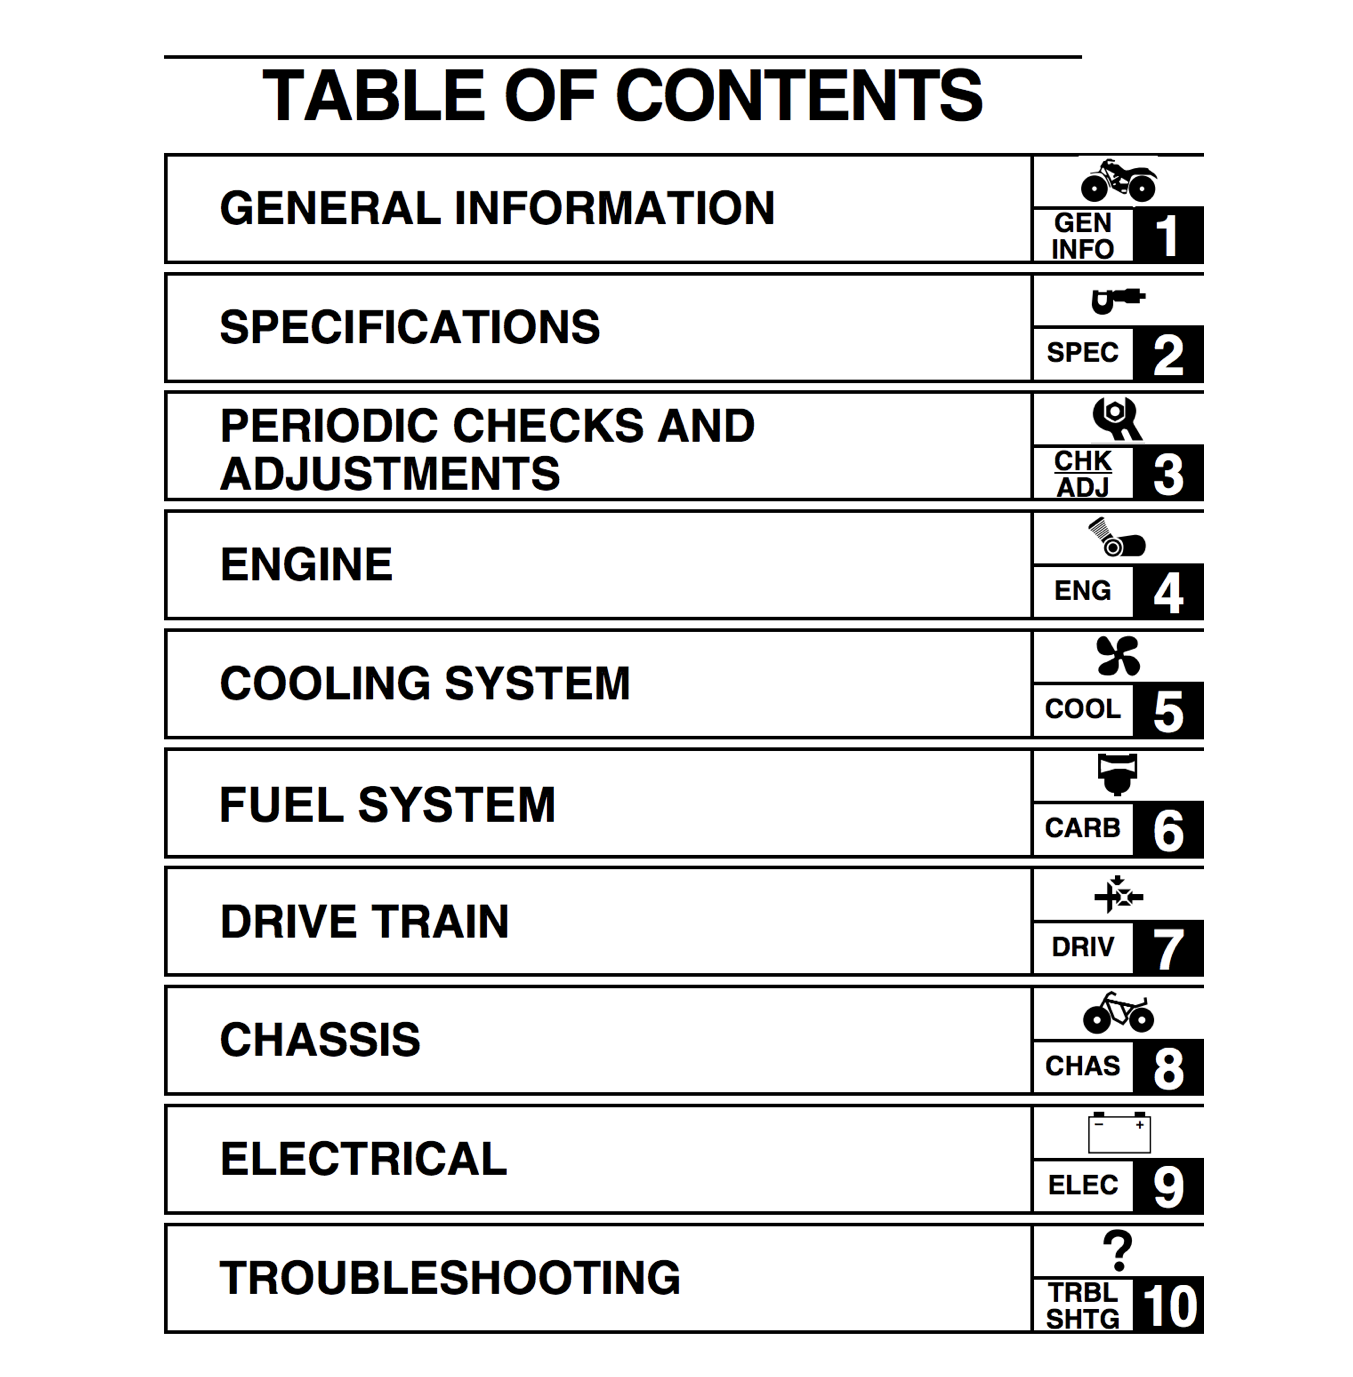 hight resolution of polaris sportsman 700 service manual chapters